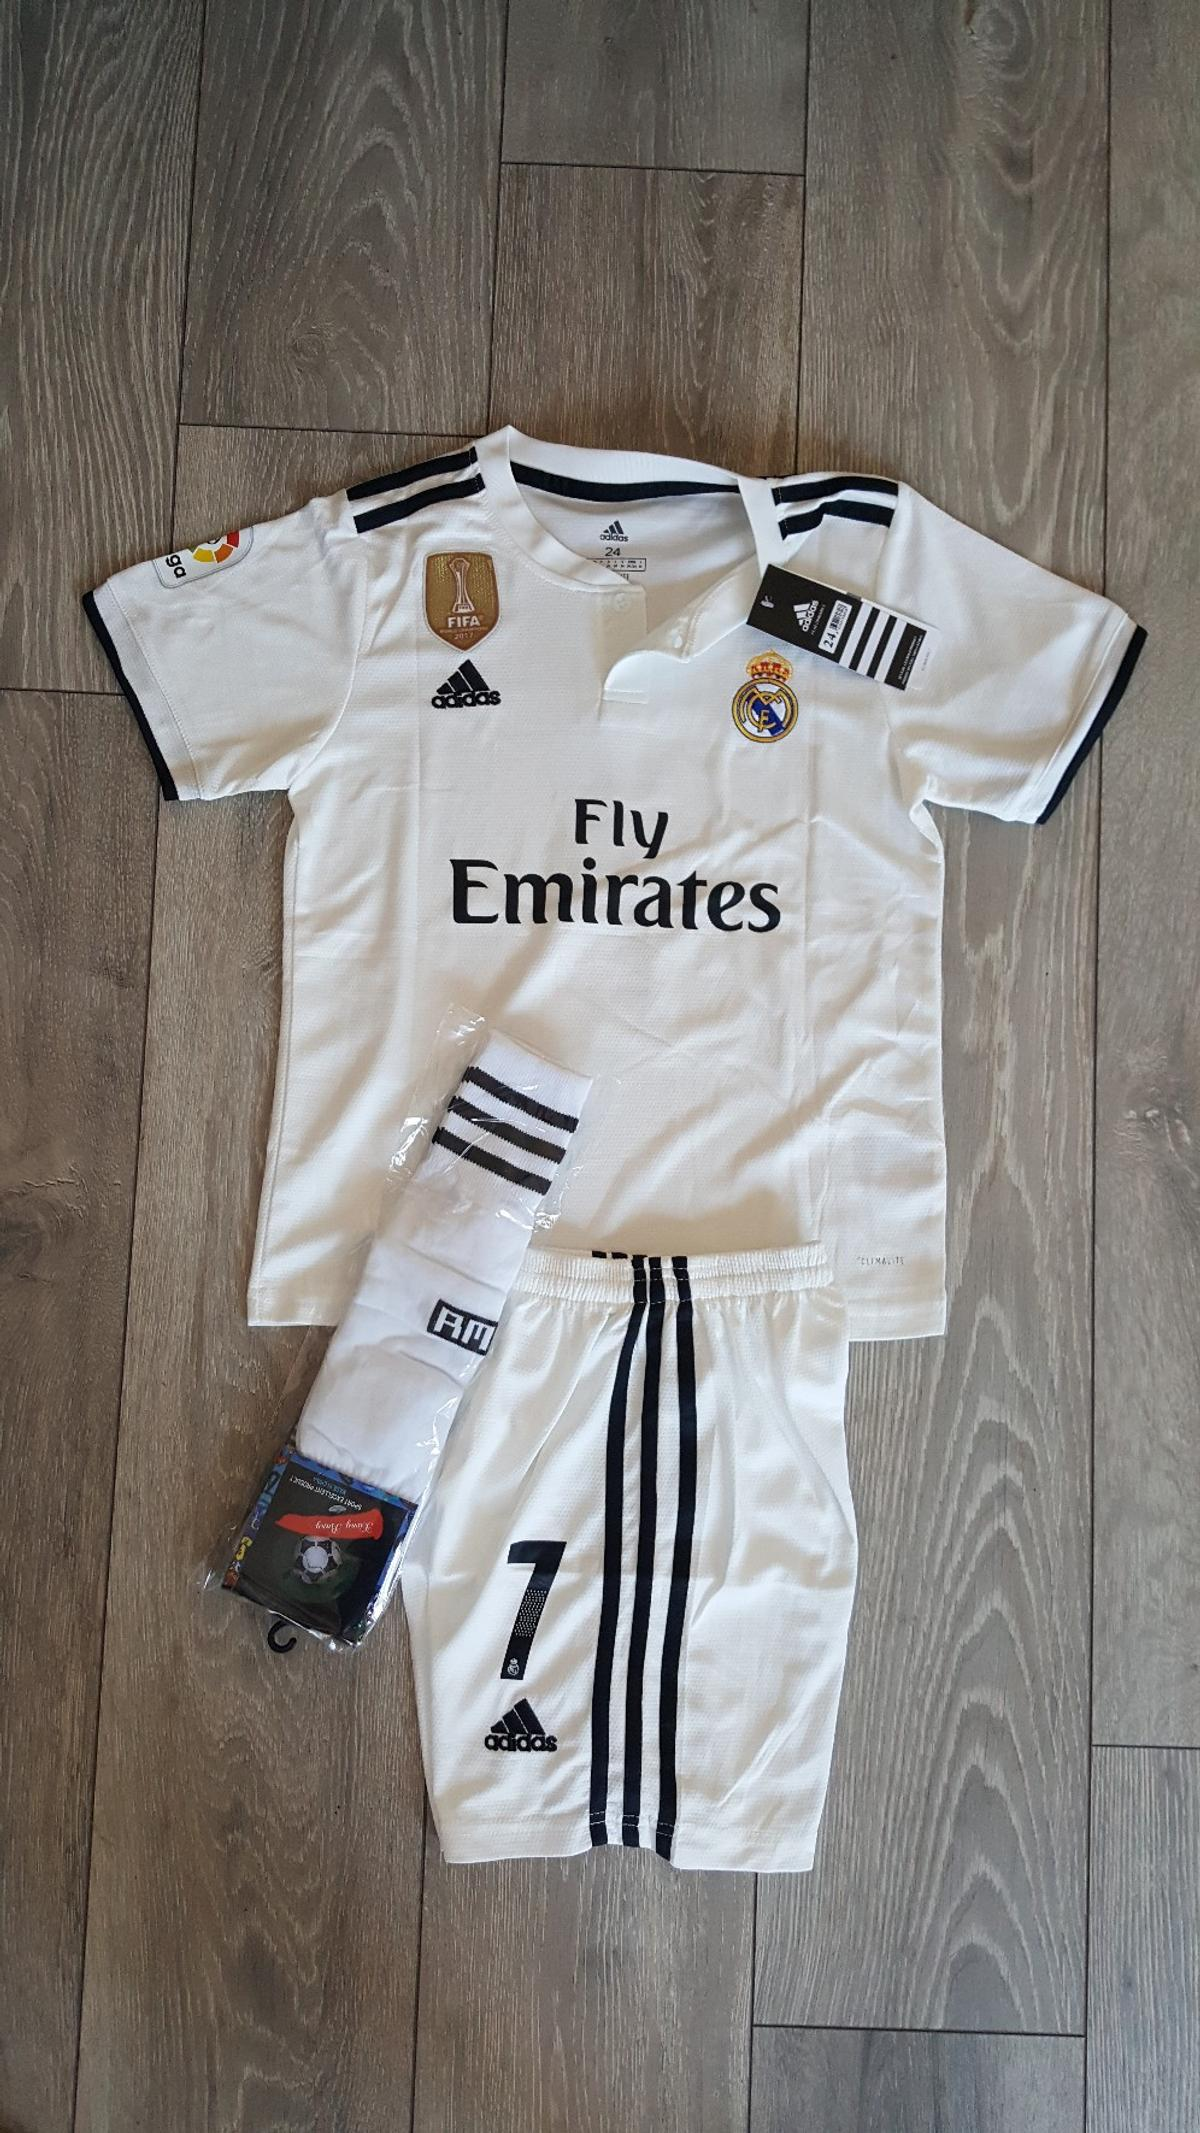 052b0db591b 2018 19 Real madrid football kit 7 13 years in CH42 Wirral for ...